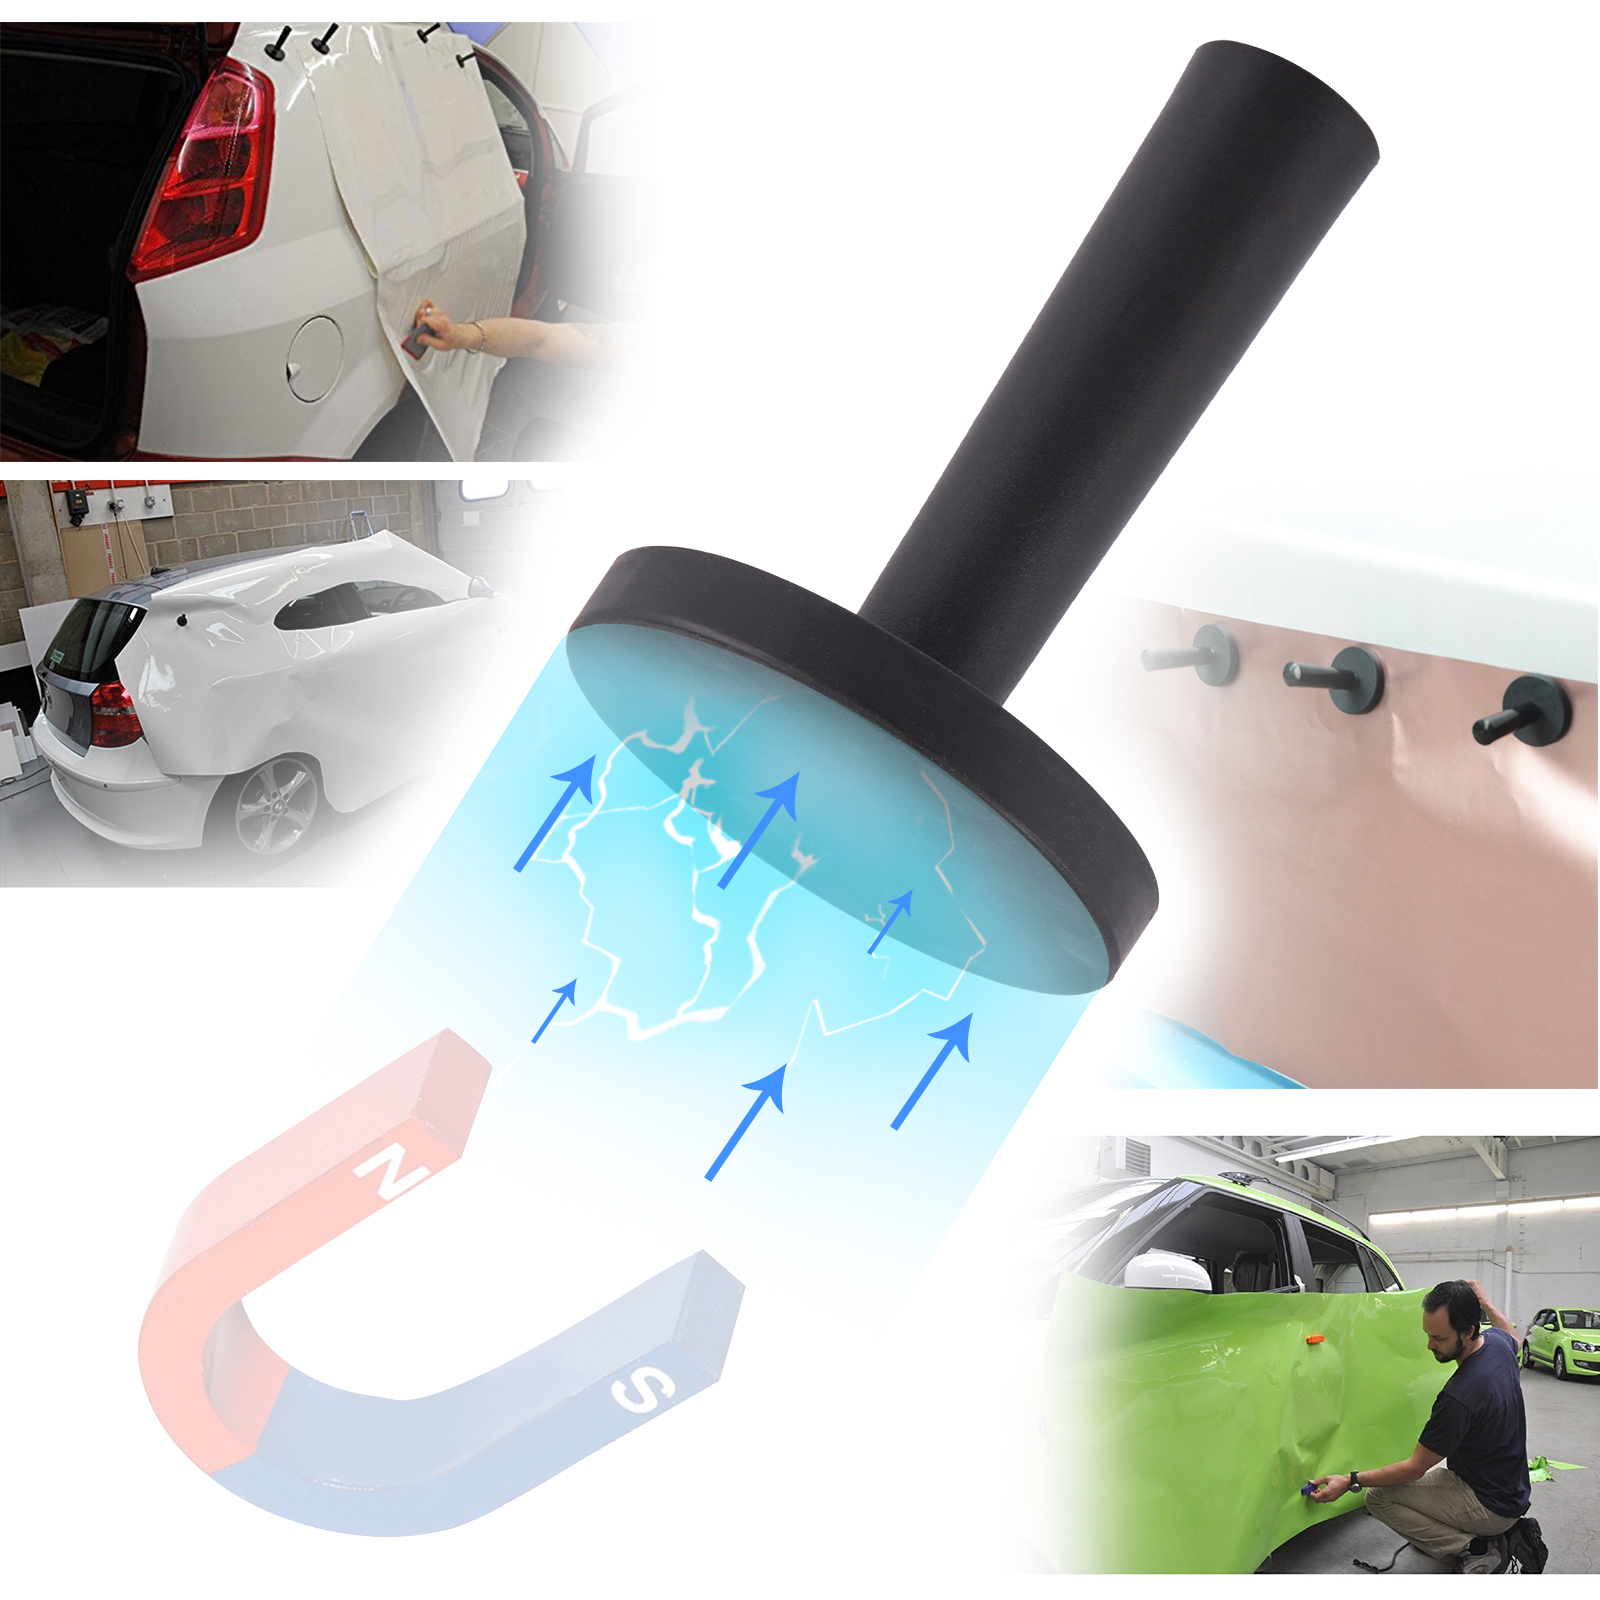 Image 2 - EHDIS Vinyl Wrap Carbon Fiber Film Squeegee Scraper Kit Magnetic Magnet Holder Car Styling Sticker Accessories Cutter Knife Tool-in Scraper from Automobiles & Motorcycles